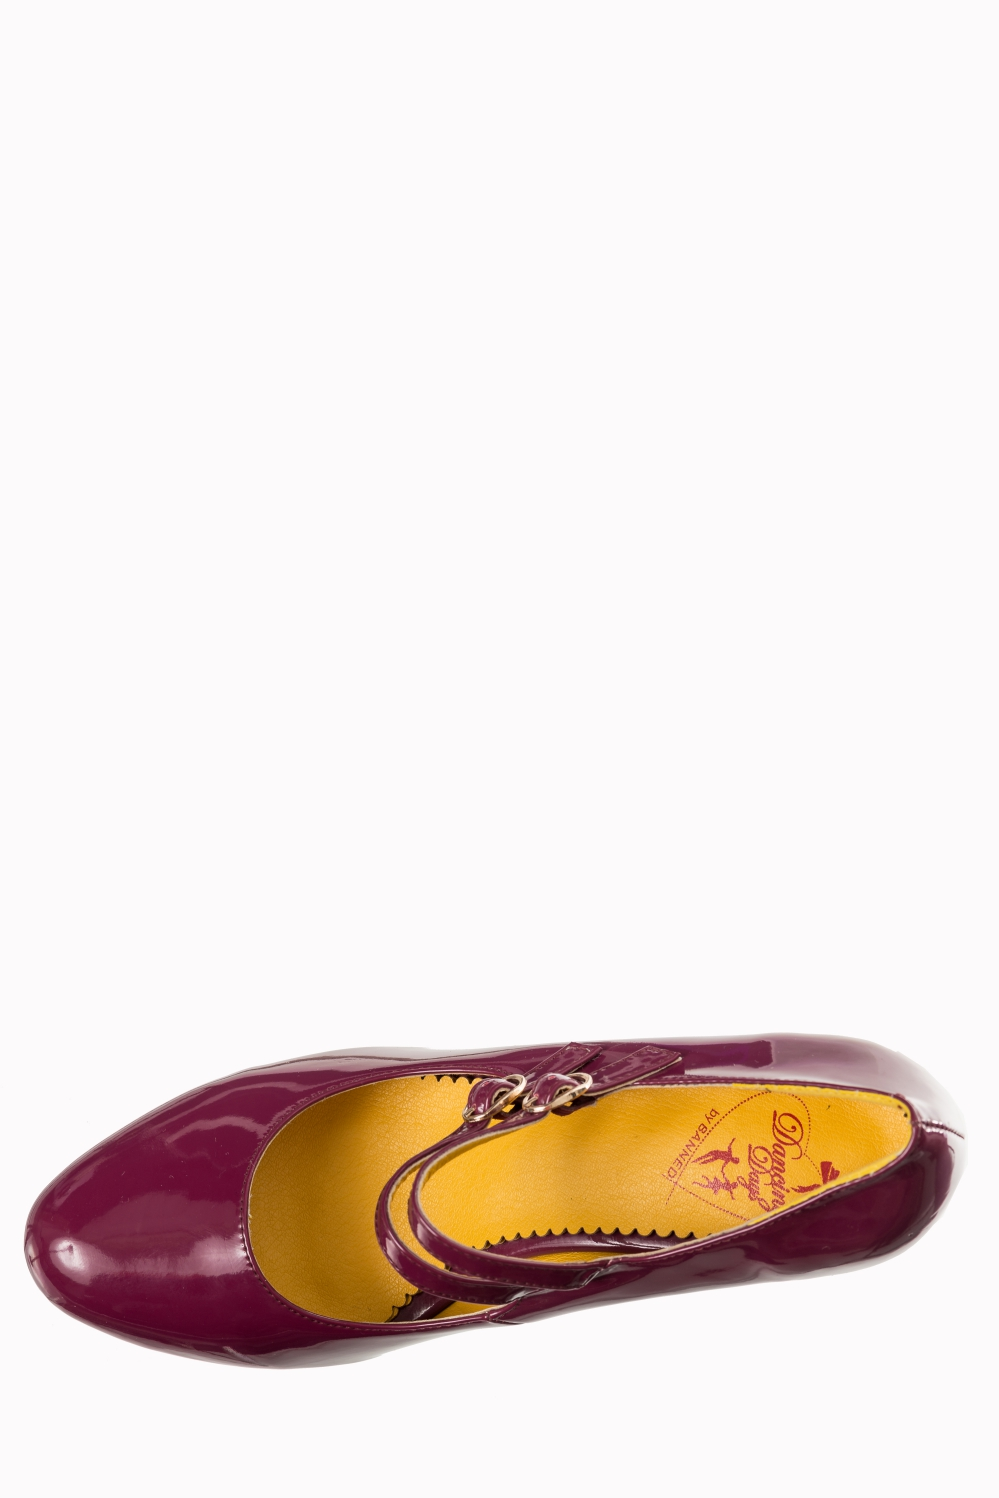 Dancing Days Golden Years 60s Patent Magenta Shoes